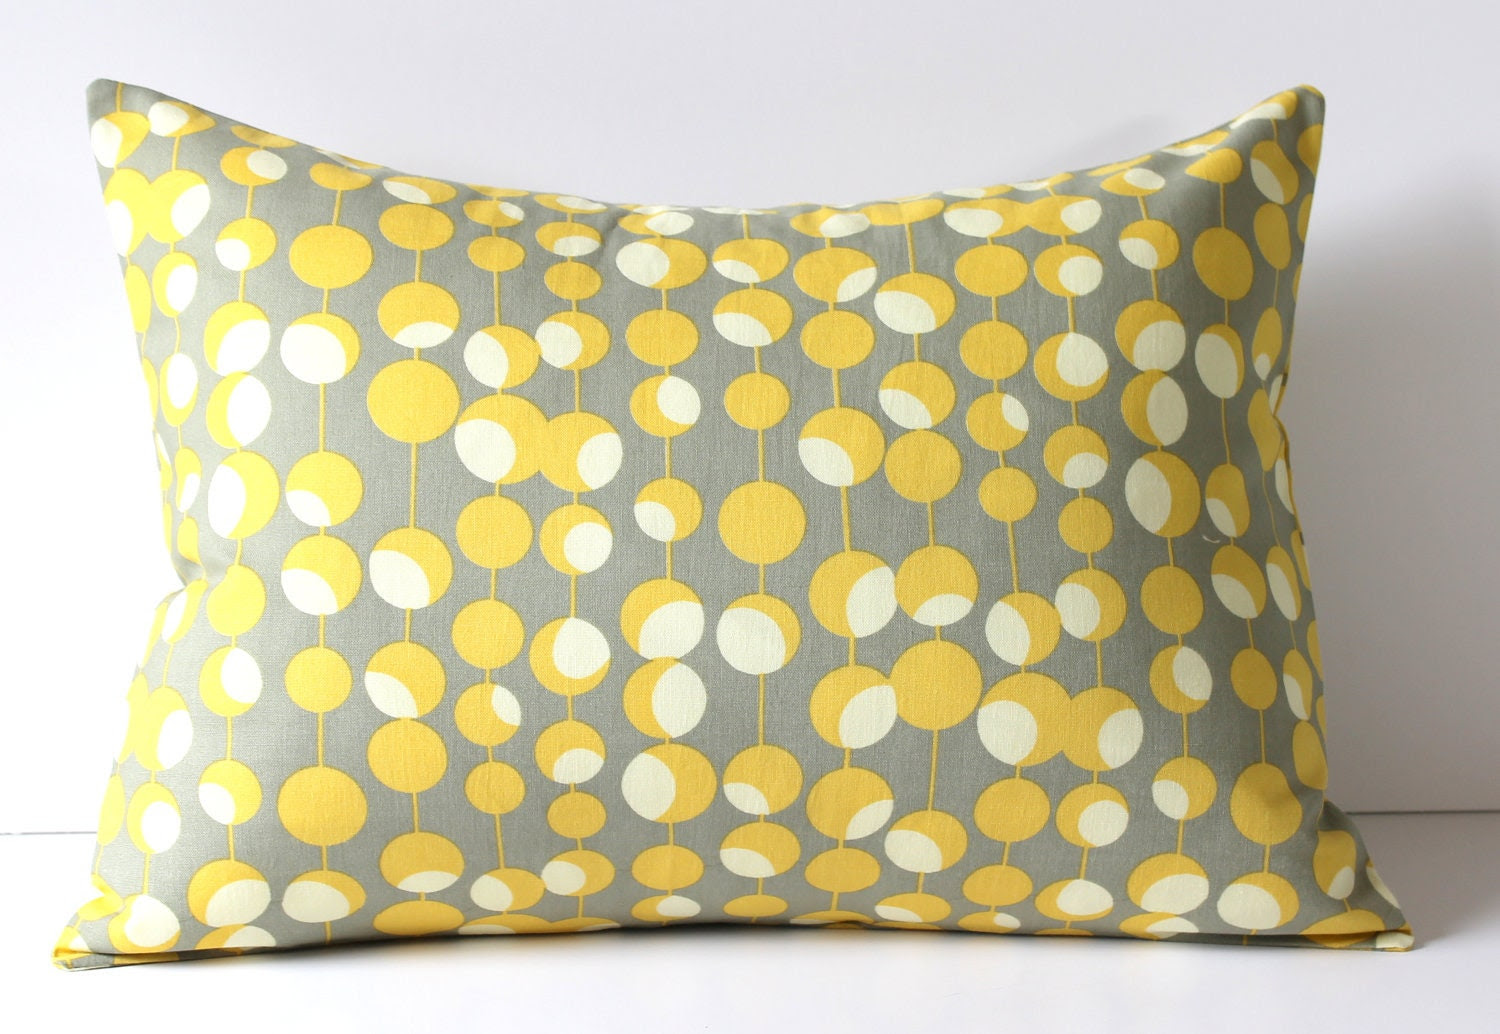 decor gray bedbuggs idea and design to decorative yellow how pillows by on